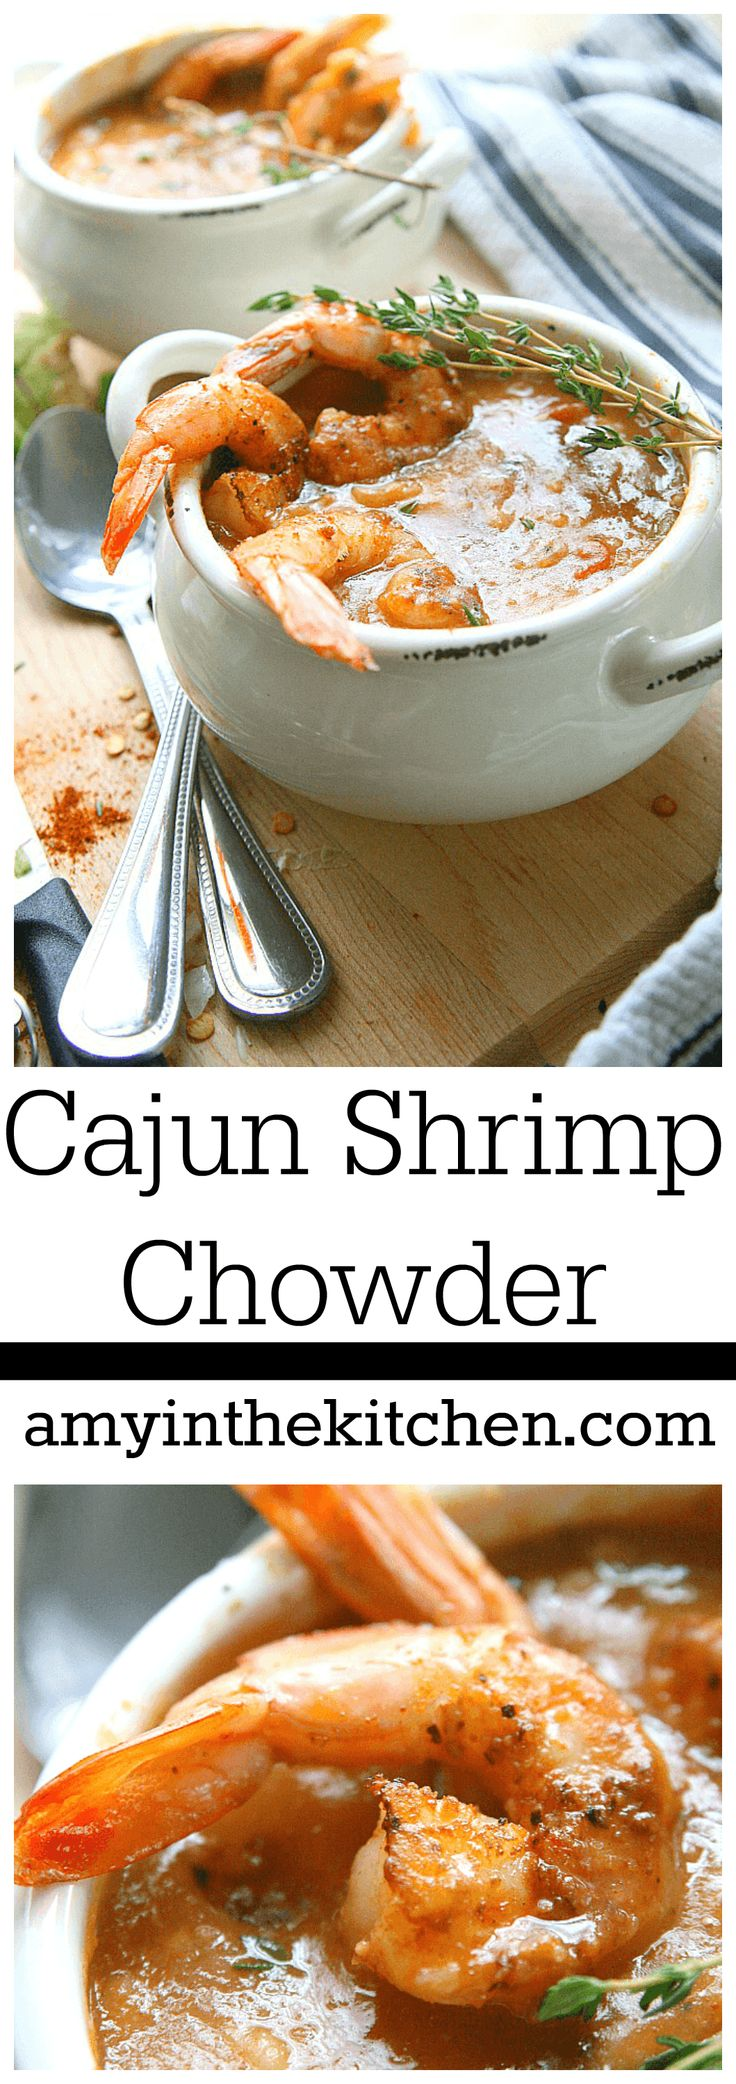 Cajun Shrimp Chowder _ is Louisiana comfort food at it's finest! With big juicy blackened shrimp in a smokey corn & potato chowder….. It's the perfect choice for a cool fall evening.